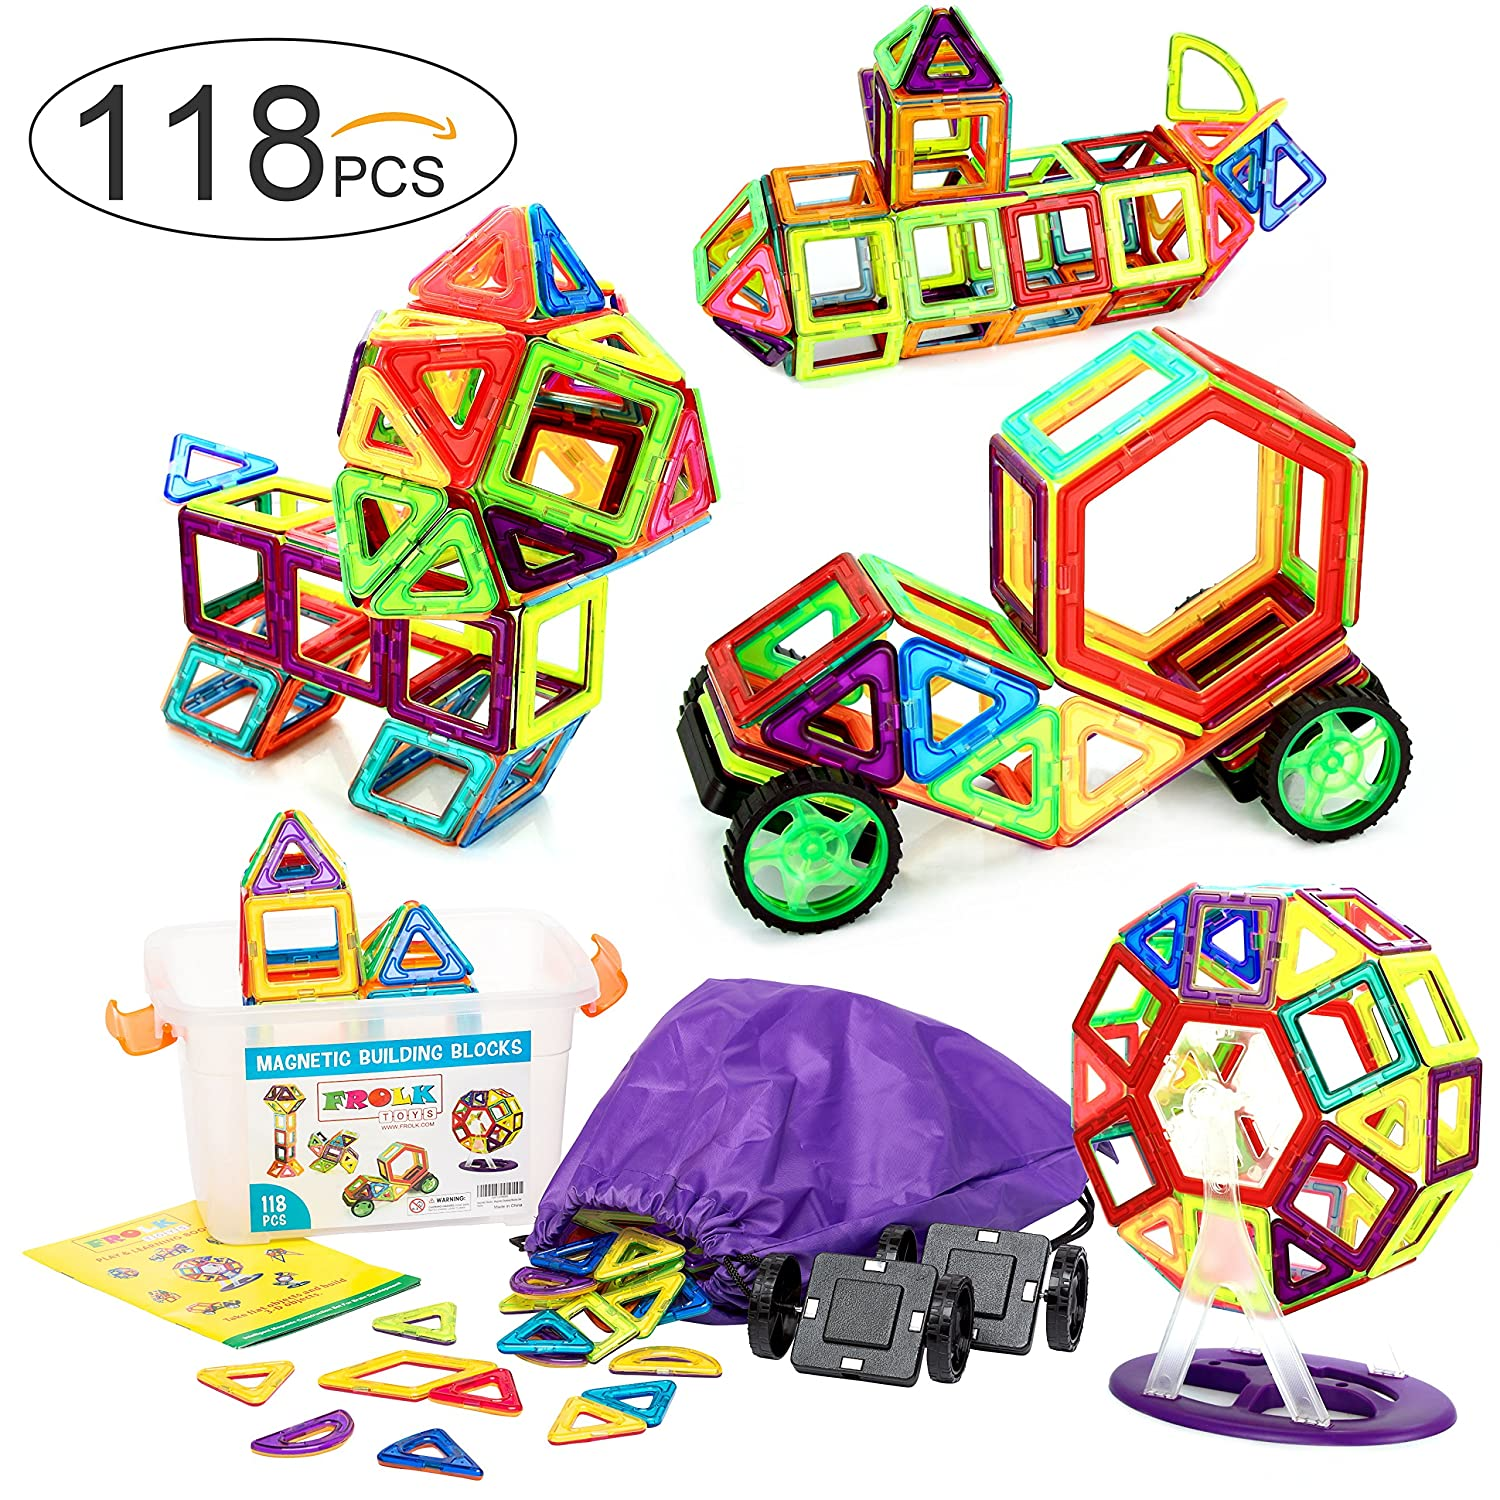 118 Pcs. Magnetic Building Blocks / Tiles Set for 3D Construction for Kids Age 3+. Educational Toy for girls and boys. Hours of Fun! Comes with Plastic Storage Box and Premium Backpack. By Frolk Review